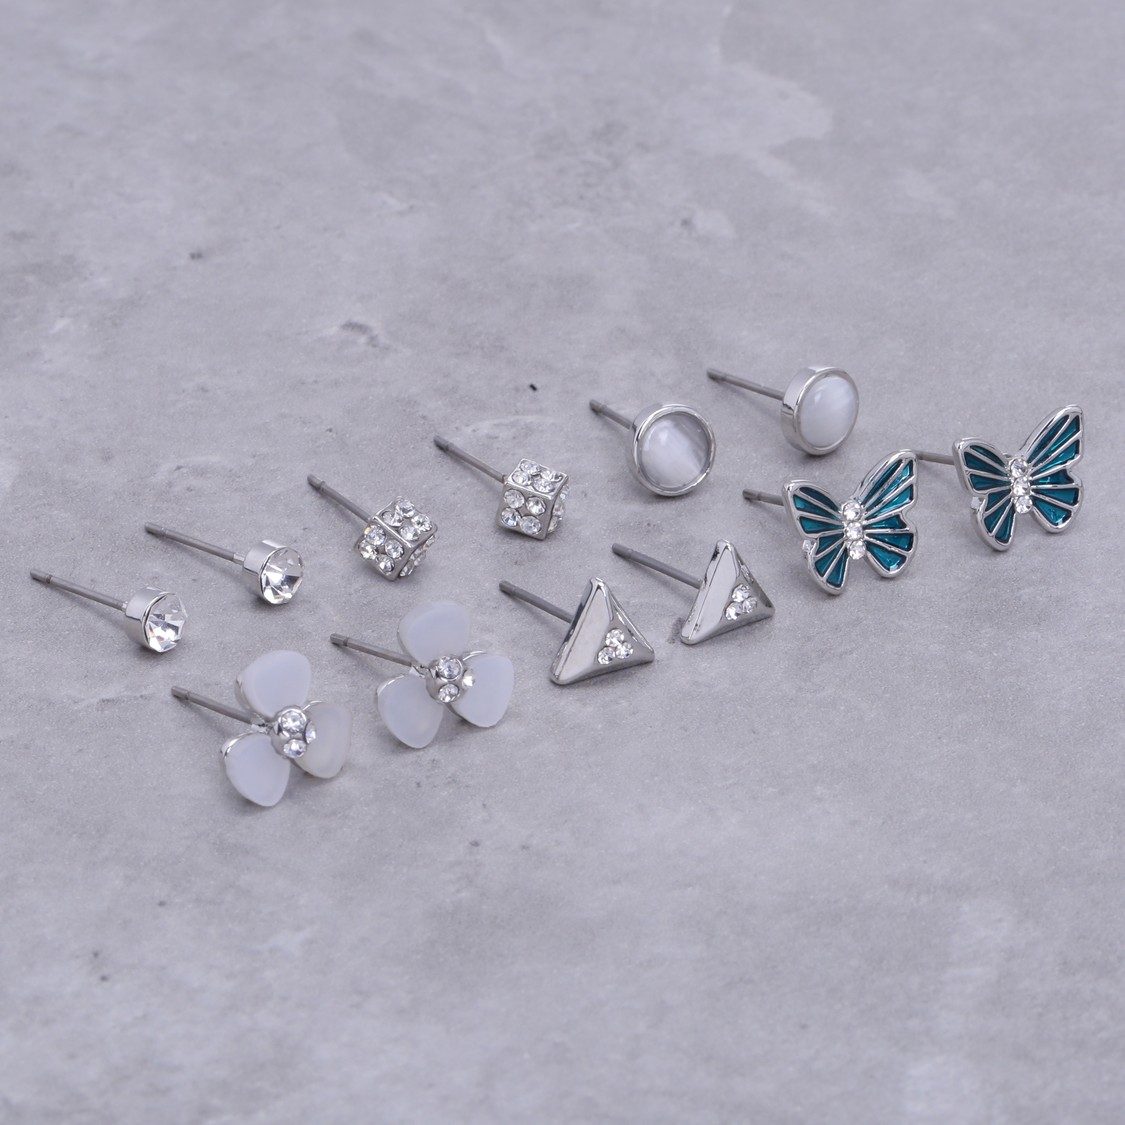 Assorted Earrings with Push Back Closure - Set of 6